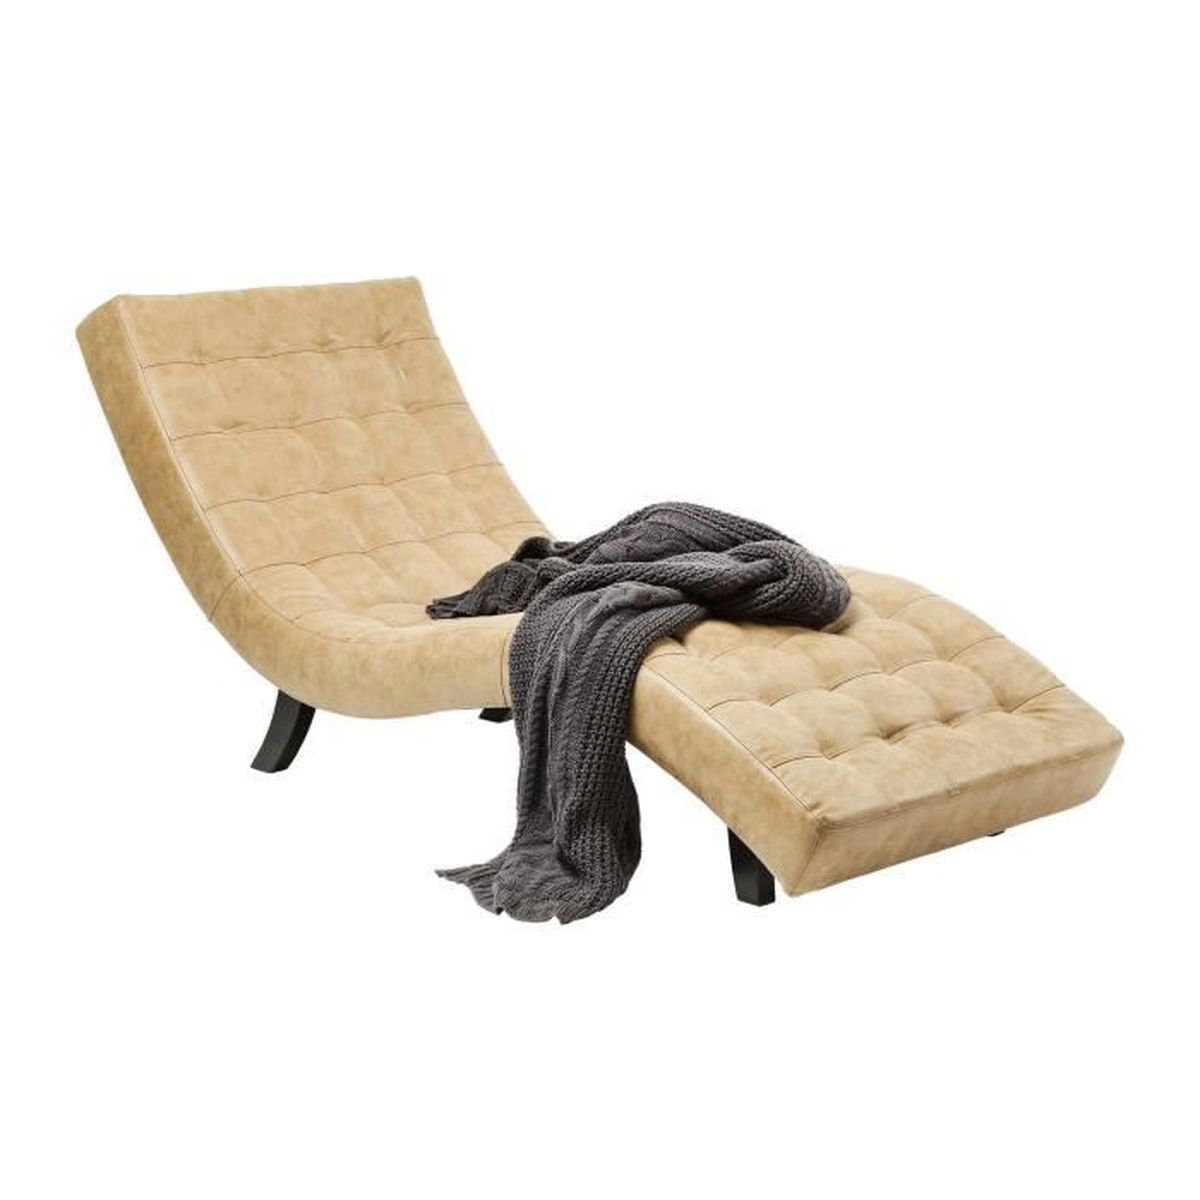 chaise longue slumber terra kare design achat vente chaise cdiscount. Black Bedroom Furniture Sets. Home Design Ideas